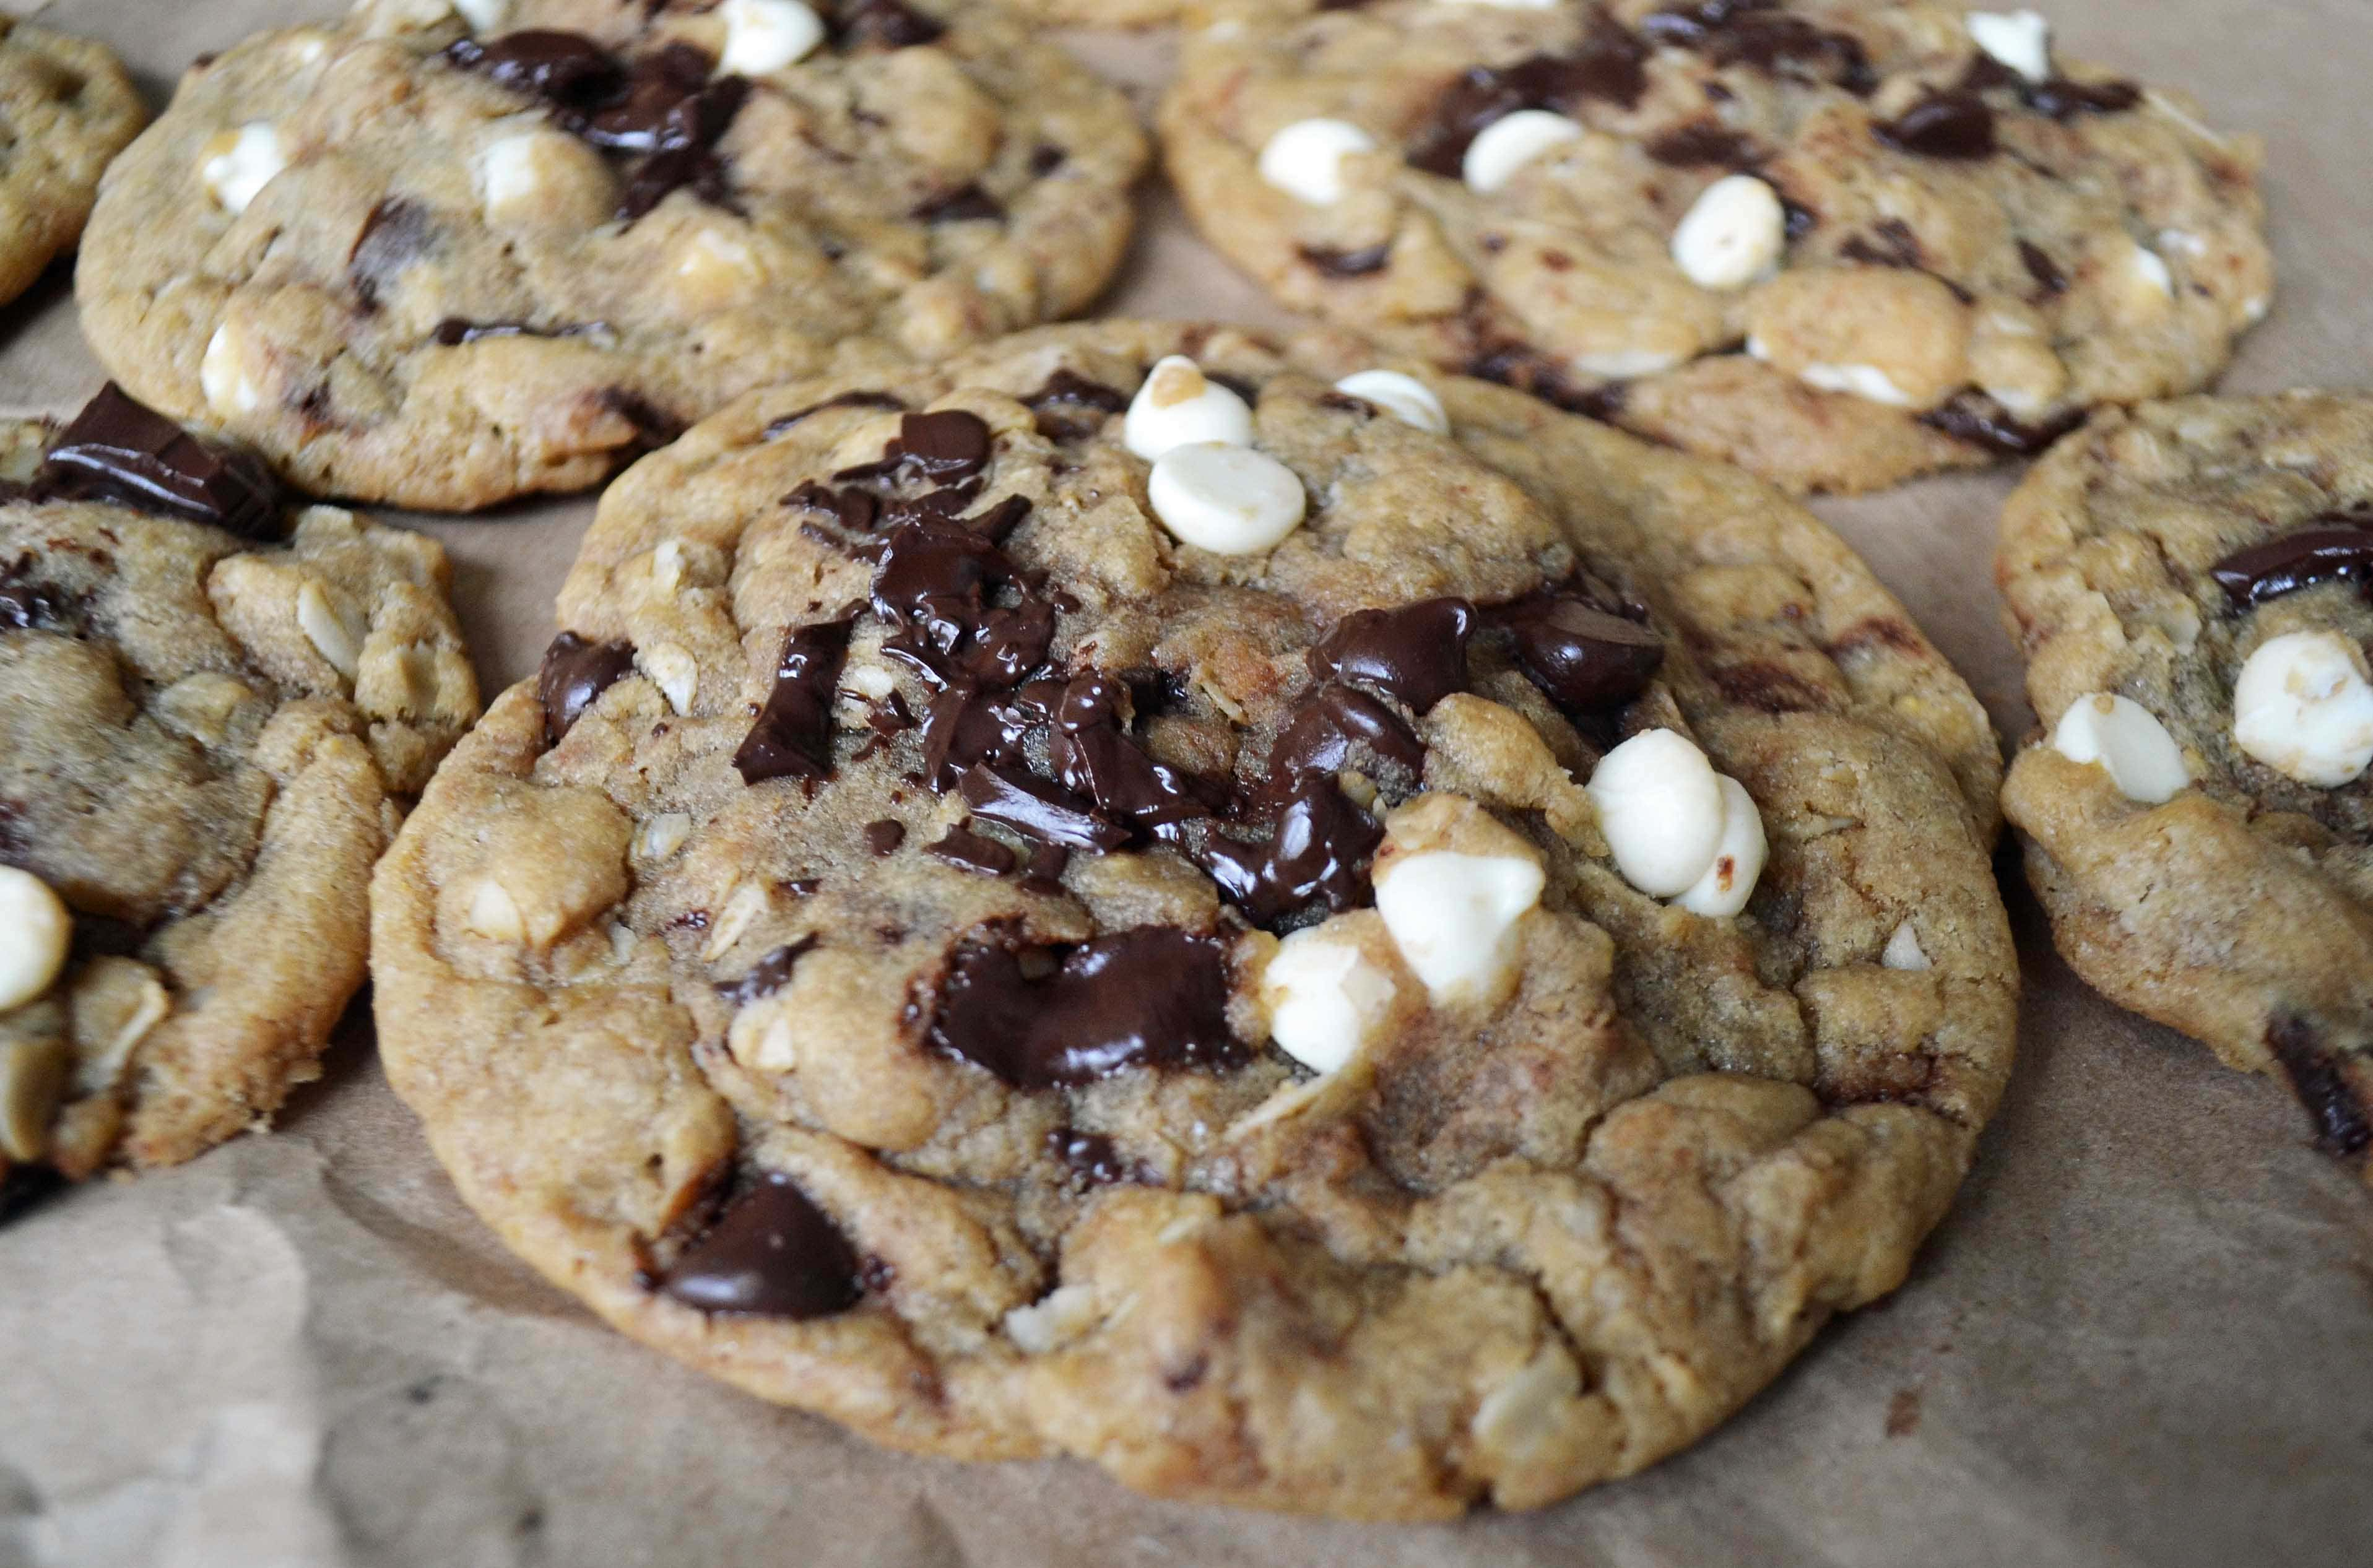 I Want to Marry You Cookies. The popular cookie made in one saucepan. The browned butter gives it a rich toffee caramel flavor that everyone loves. www.modernhoney.com